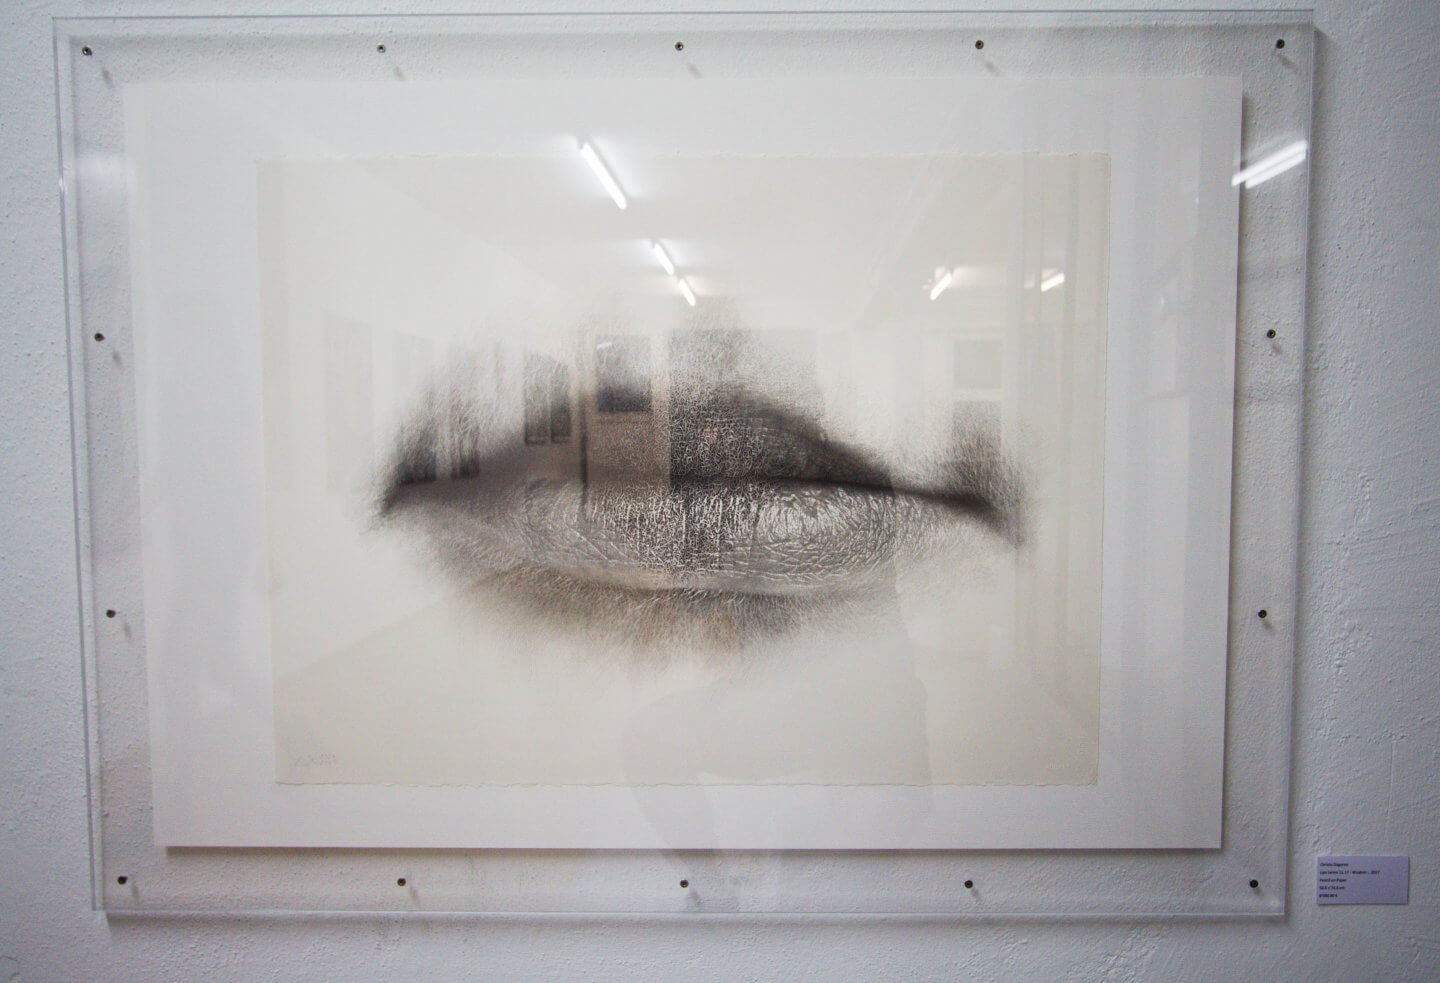 Galerie Benjamin Eck München Christo Dagorov, Lips Series 11.17 - Wisdom -, 2017 Pencil on Paper,56.6 x 76.6 cm